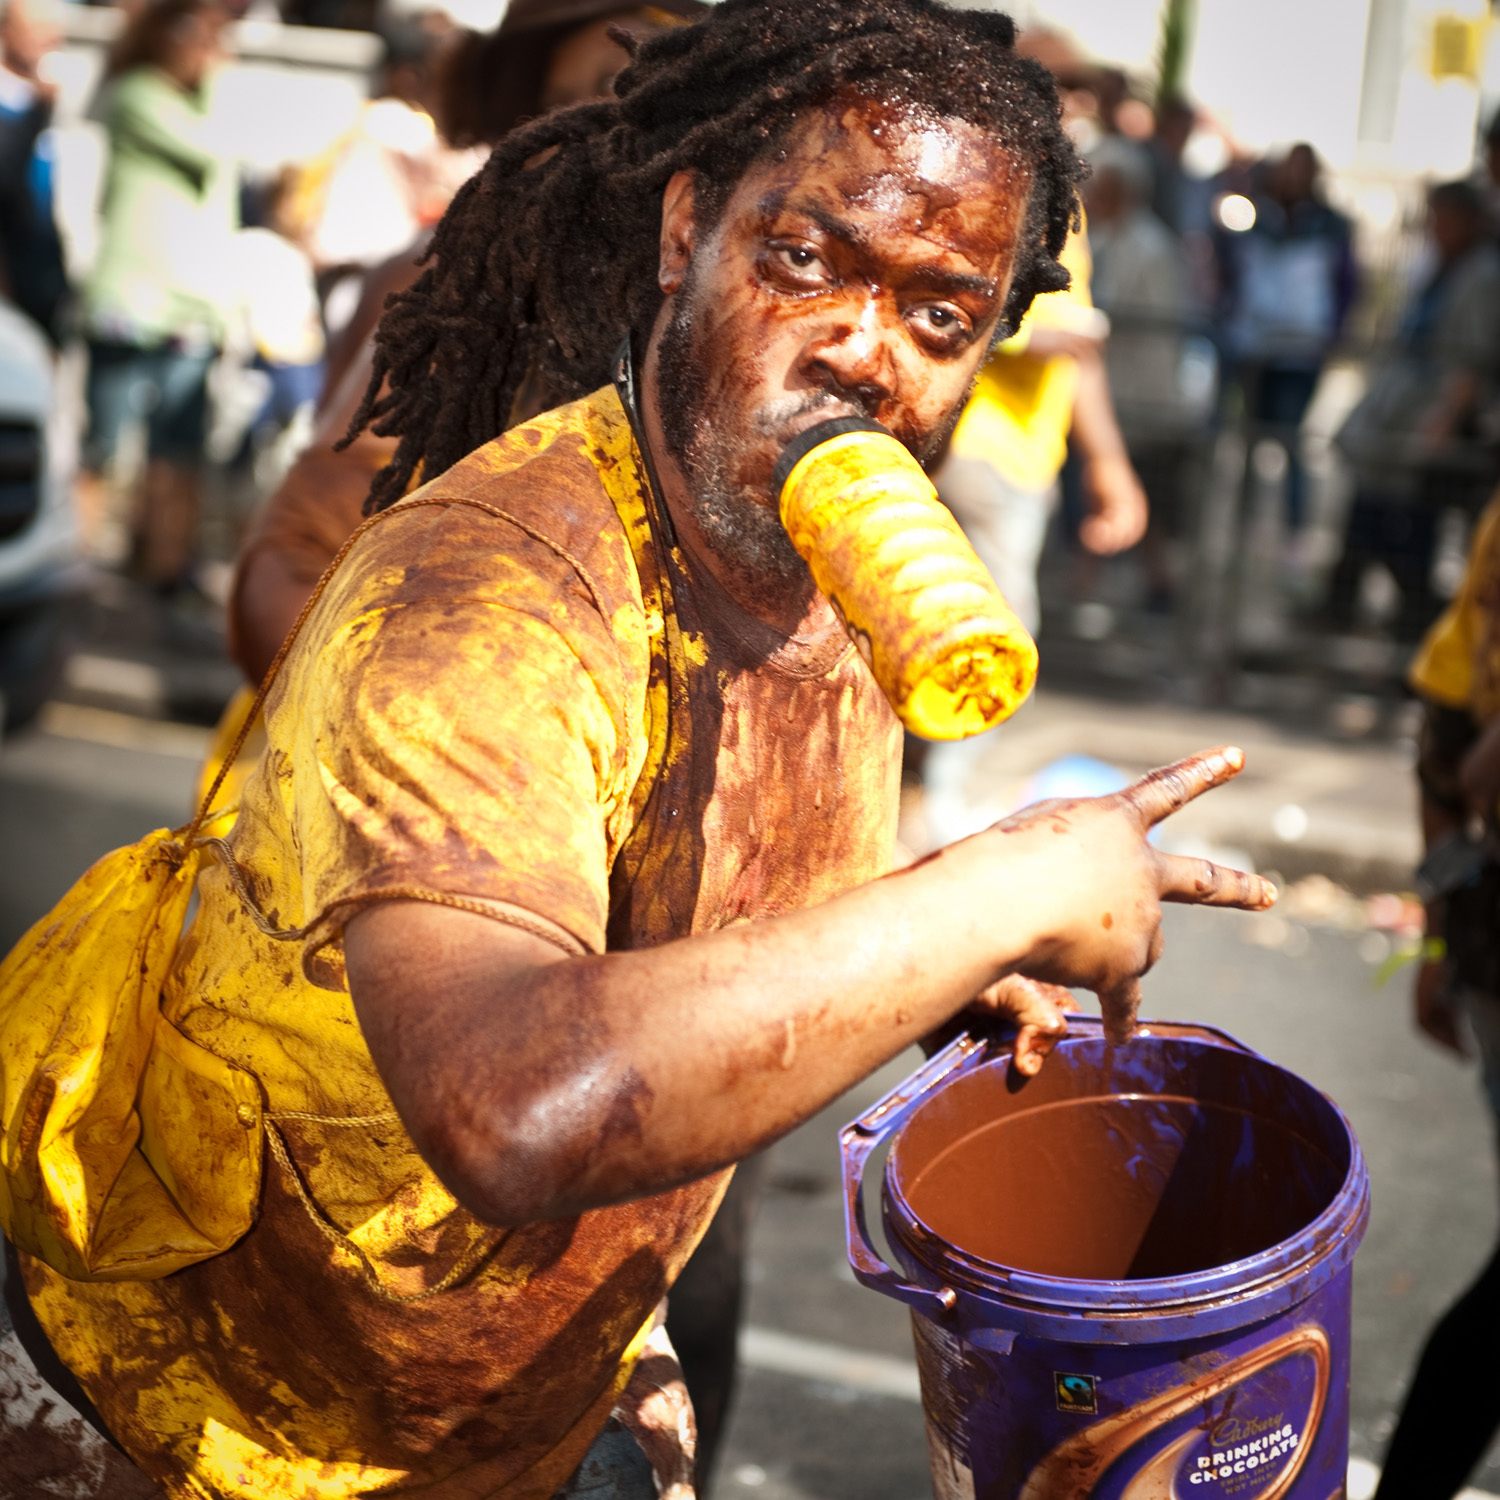 Carnival_the_chocolate_08